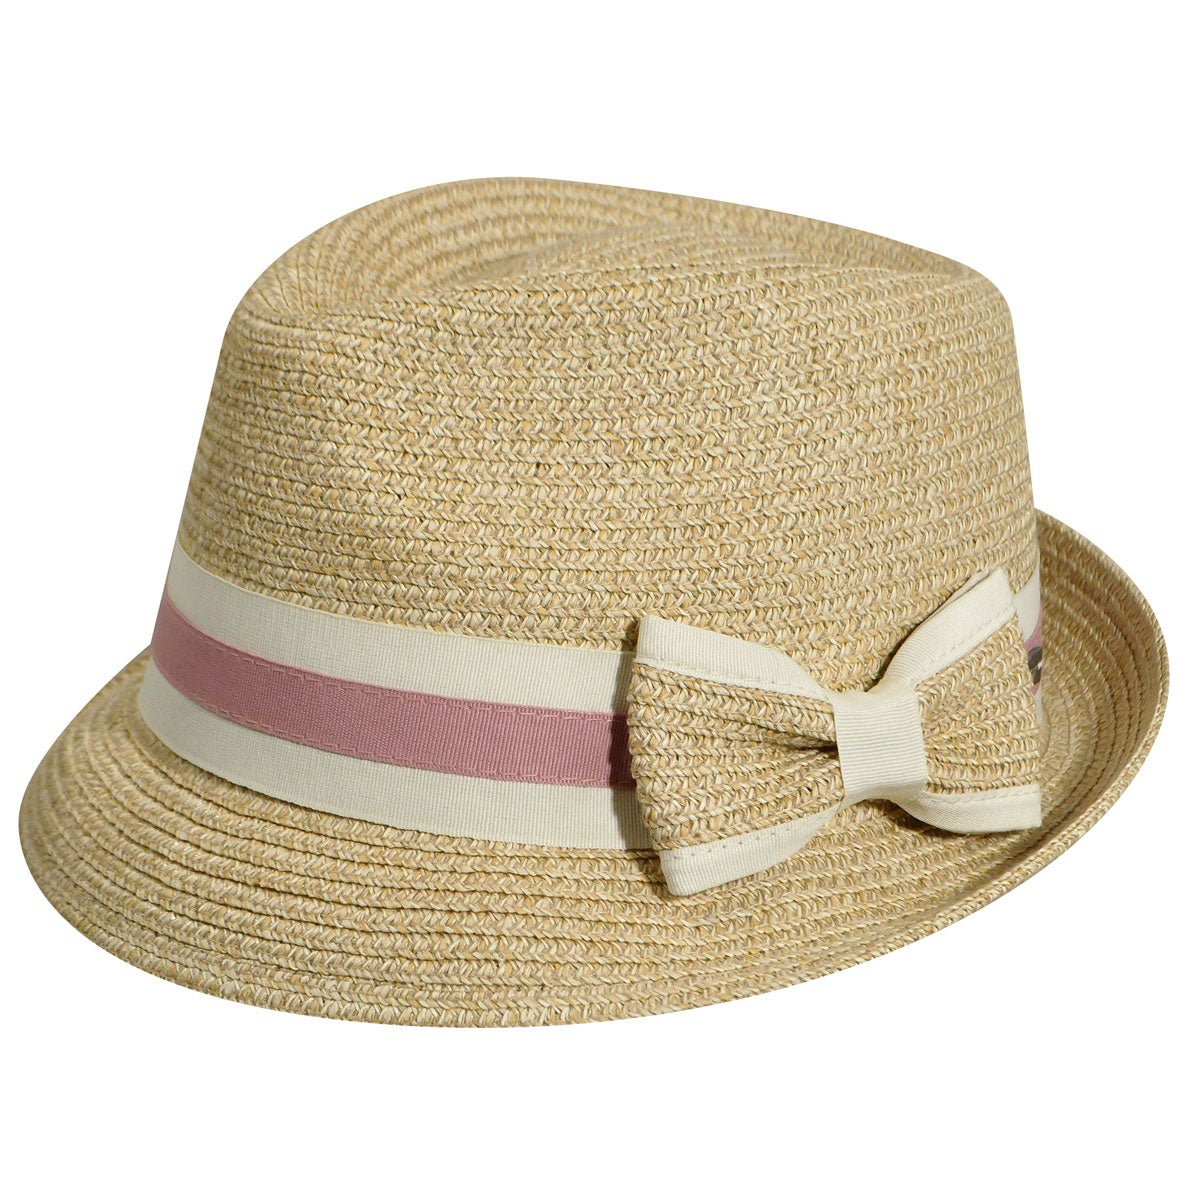 1920s Hat Styles for Women – History Beyond the Cloche Hat Joanne Braided Trilby - Natural1SFM $29.25 AT vintagedancer.com